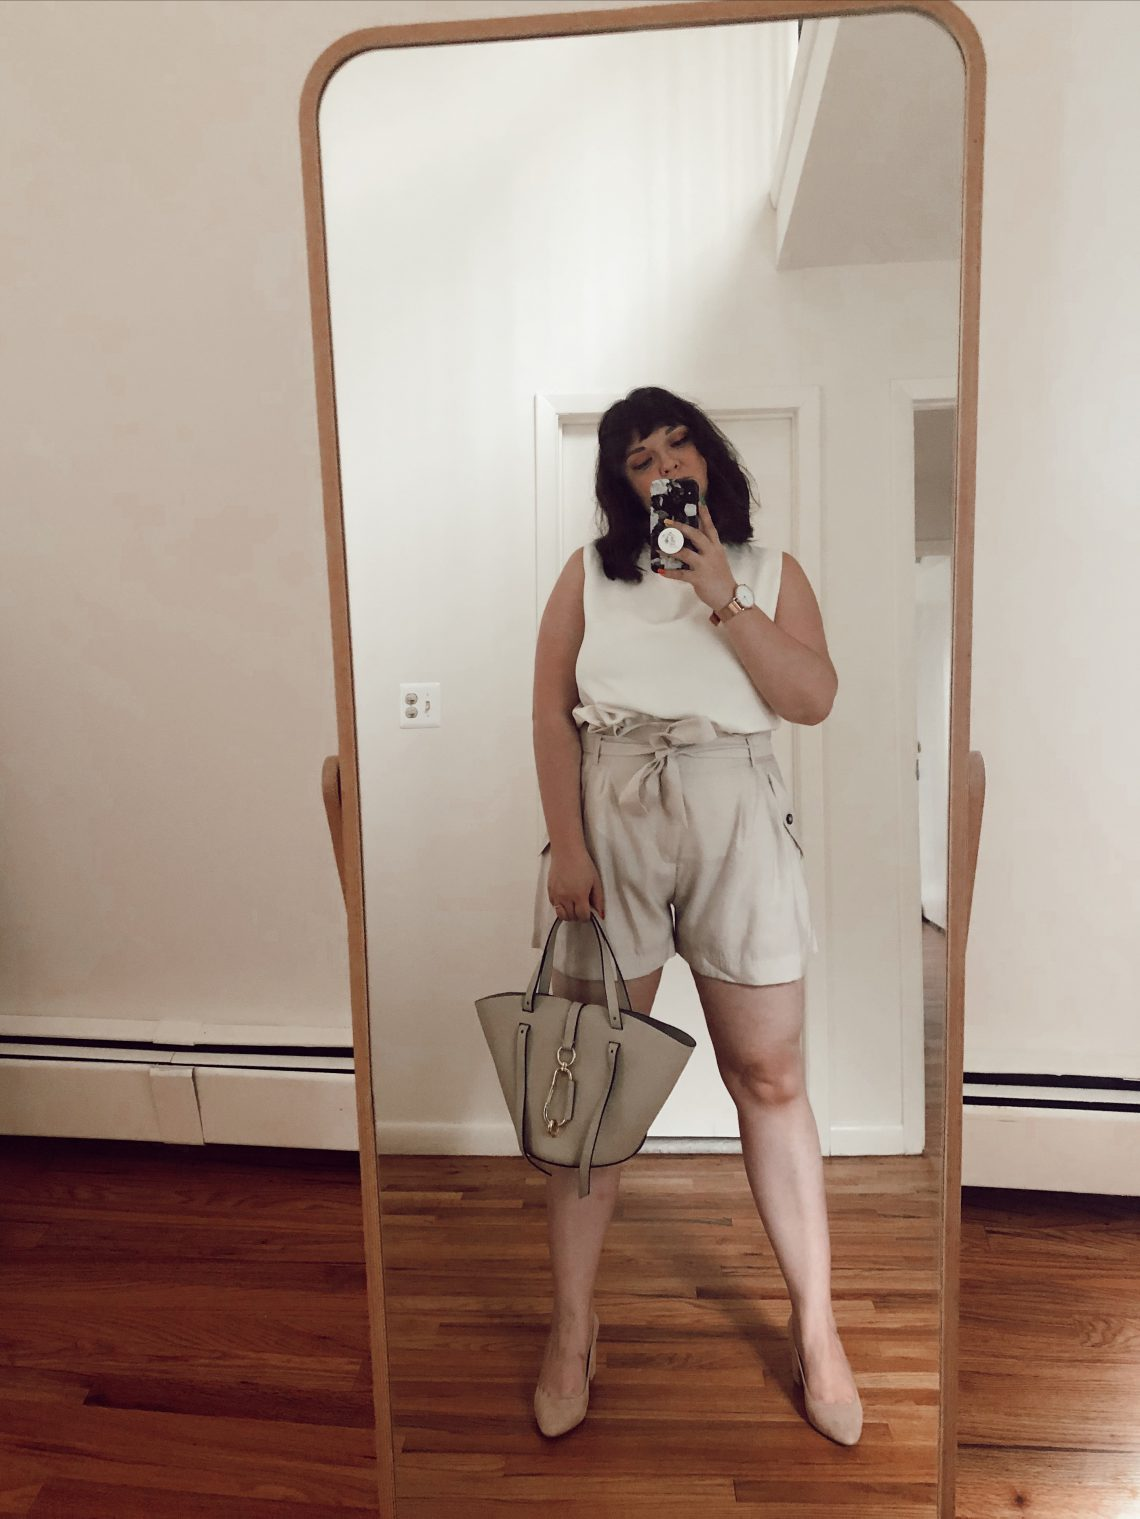 travel blogger, fashion blogger, food blogger, ootd, style, outfit, foodie, blogger, travel blog, fashion blog, food blog, bucket list, bucket list check, married life, married as fuck, mrs and mr judish, lynzi judish, dave brown, bucket list blog, NYC, body image, body positivity, lifestyle, plus size, ootd, outfit of the day, fashion bloggers, H&M, Zac Zac Posen, handbag, belay leather tote, nude outfit, beige outfit, beige pumps